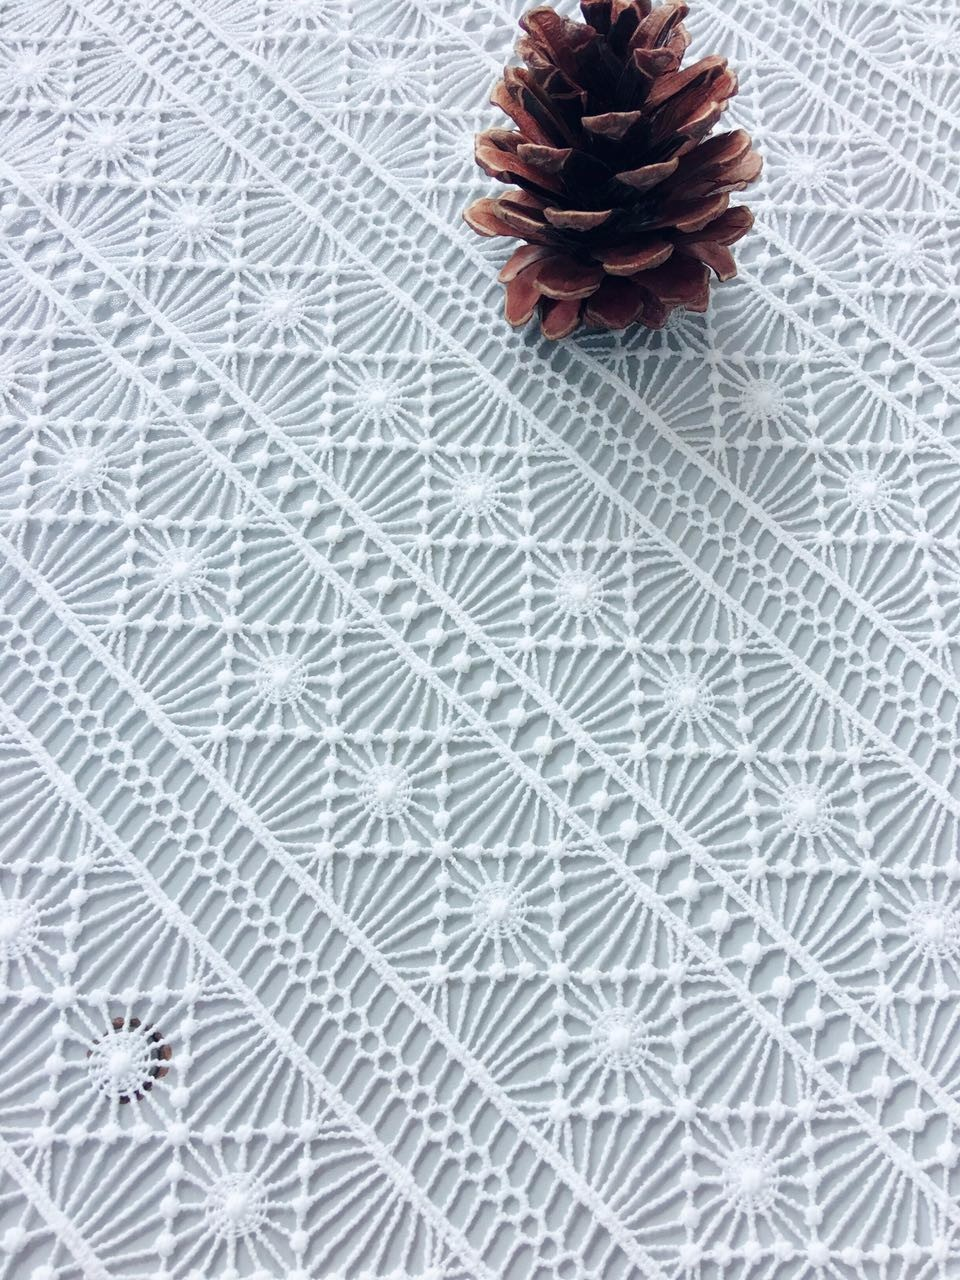 latest design 100% polyester water soluble chemical embroidery lace textile fabric for lady dress